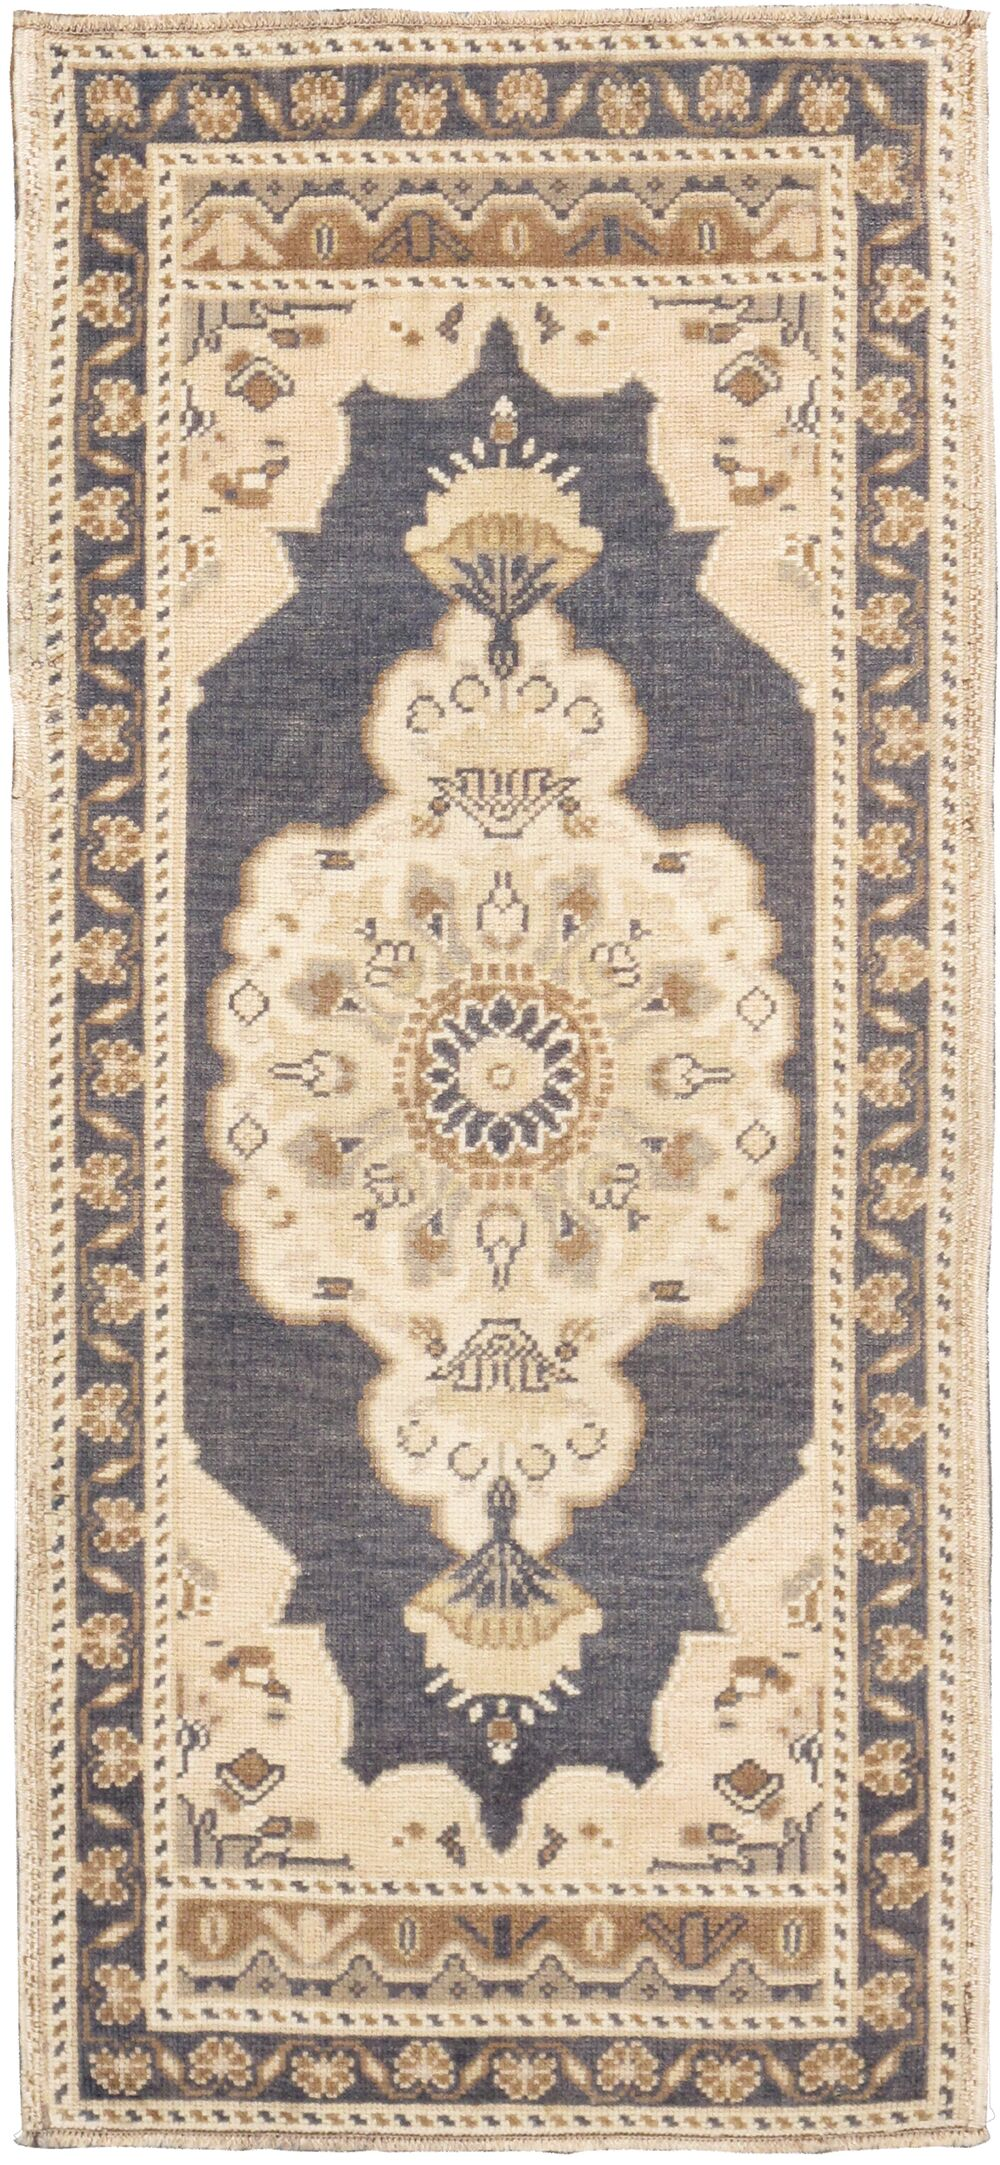 Oushak Lamb's Wool Hand-Knotted Beige/Gray Area Rug